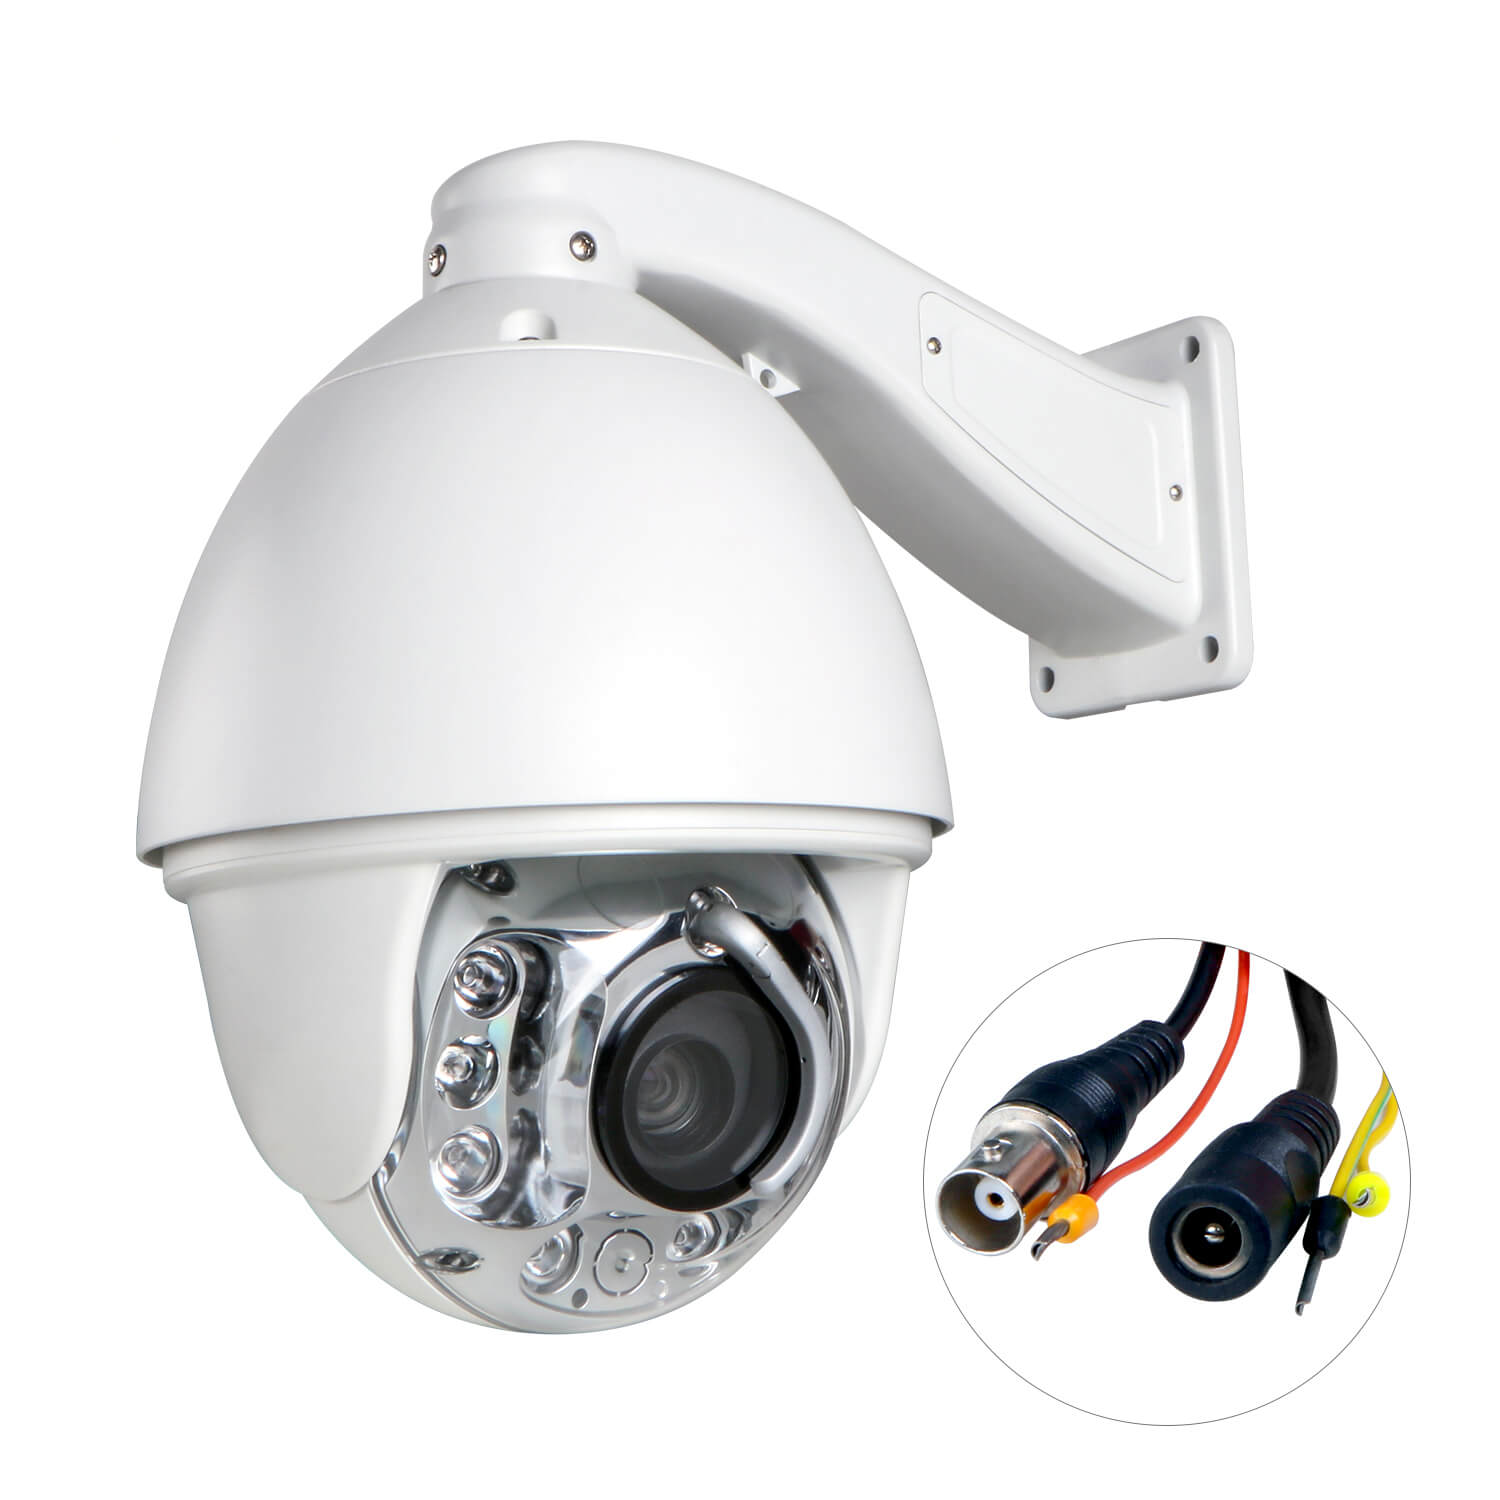 Camera Surveillance Exterieur Ptz 30x Auto Tracking Zoom Cctv High Speed 1200tvl 8ir Dome